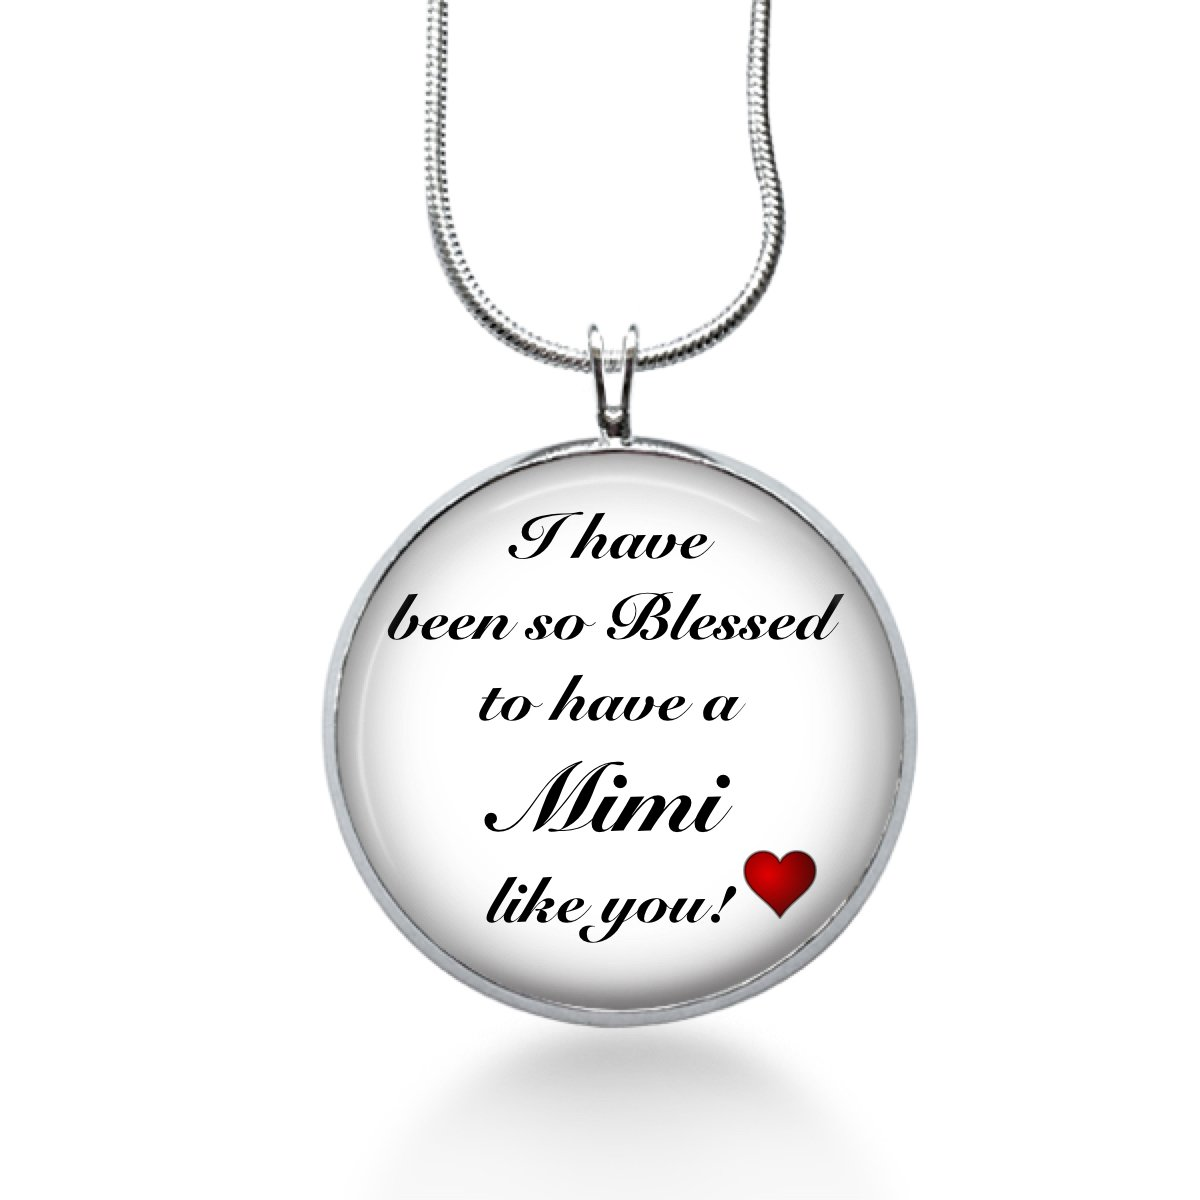 MIMI Necklace - Family Pendant, Saying Charm, Quote Gifts for Grandma - Handmade Fun Jewelry